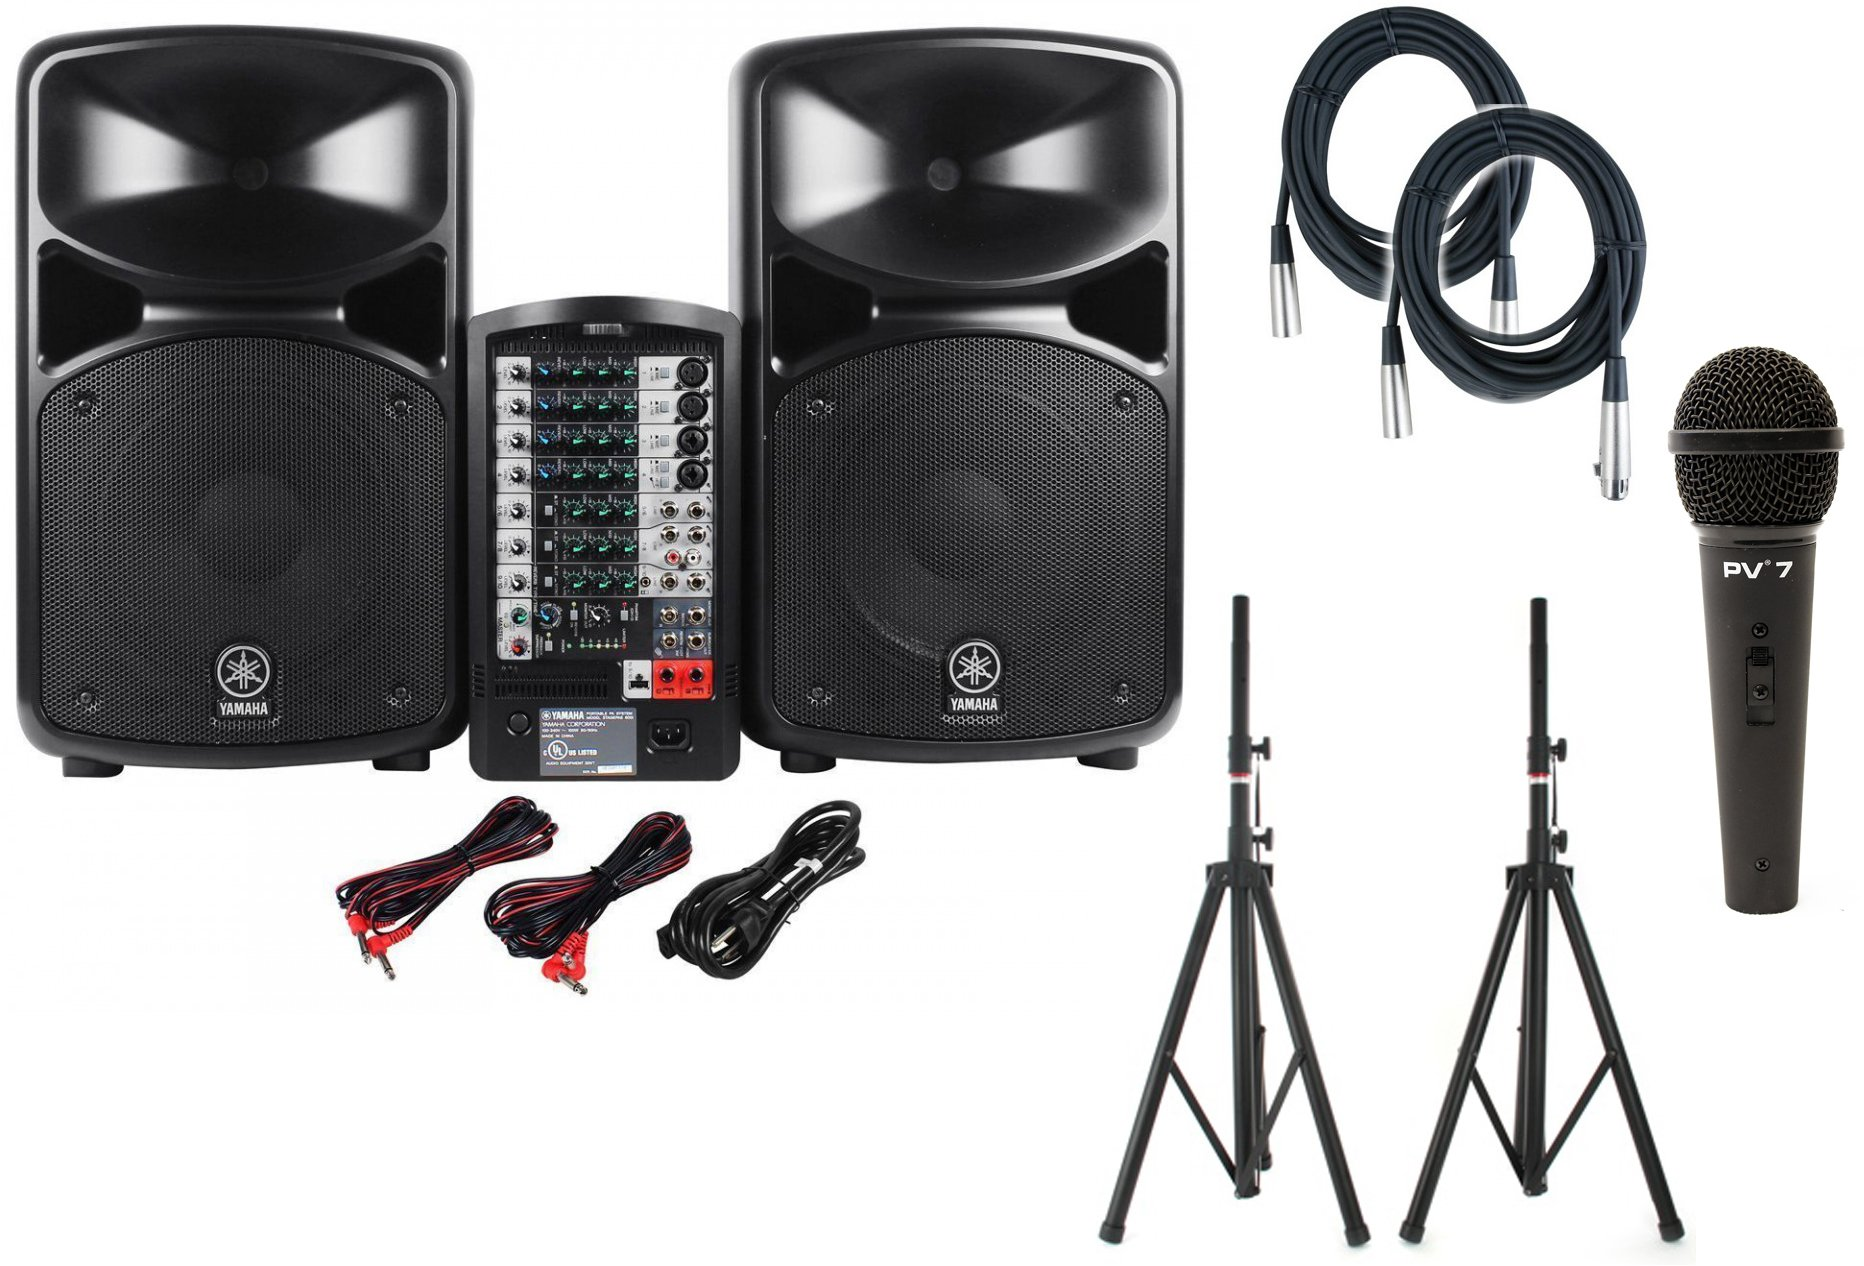 Yamaha STAGEPAS 600I Portable PA System w/ Speaker Stands, Microphone, and (2) XLR Cables